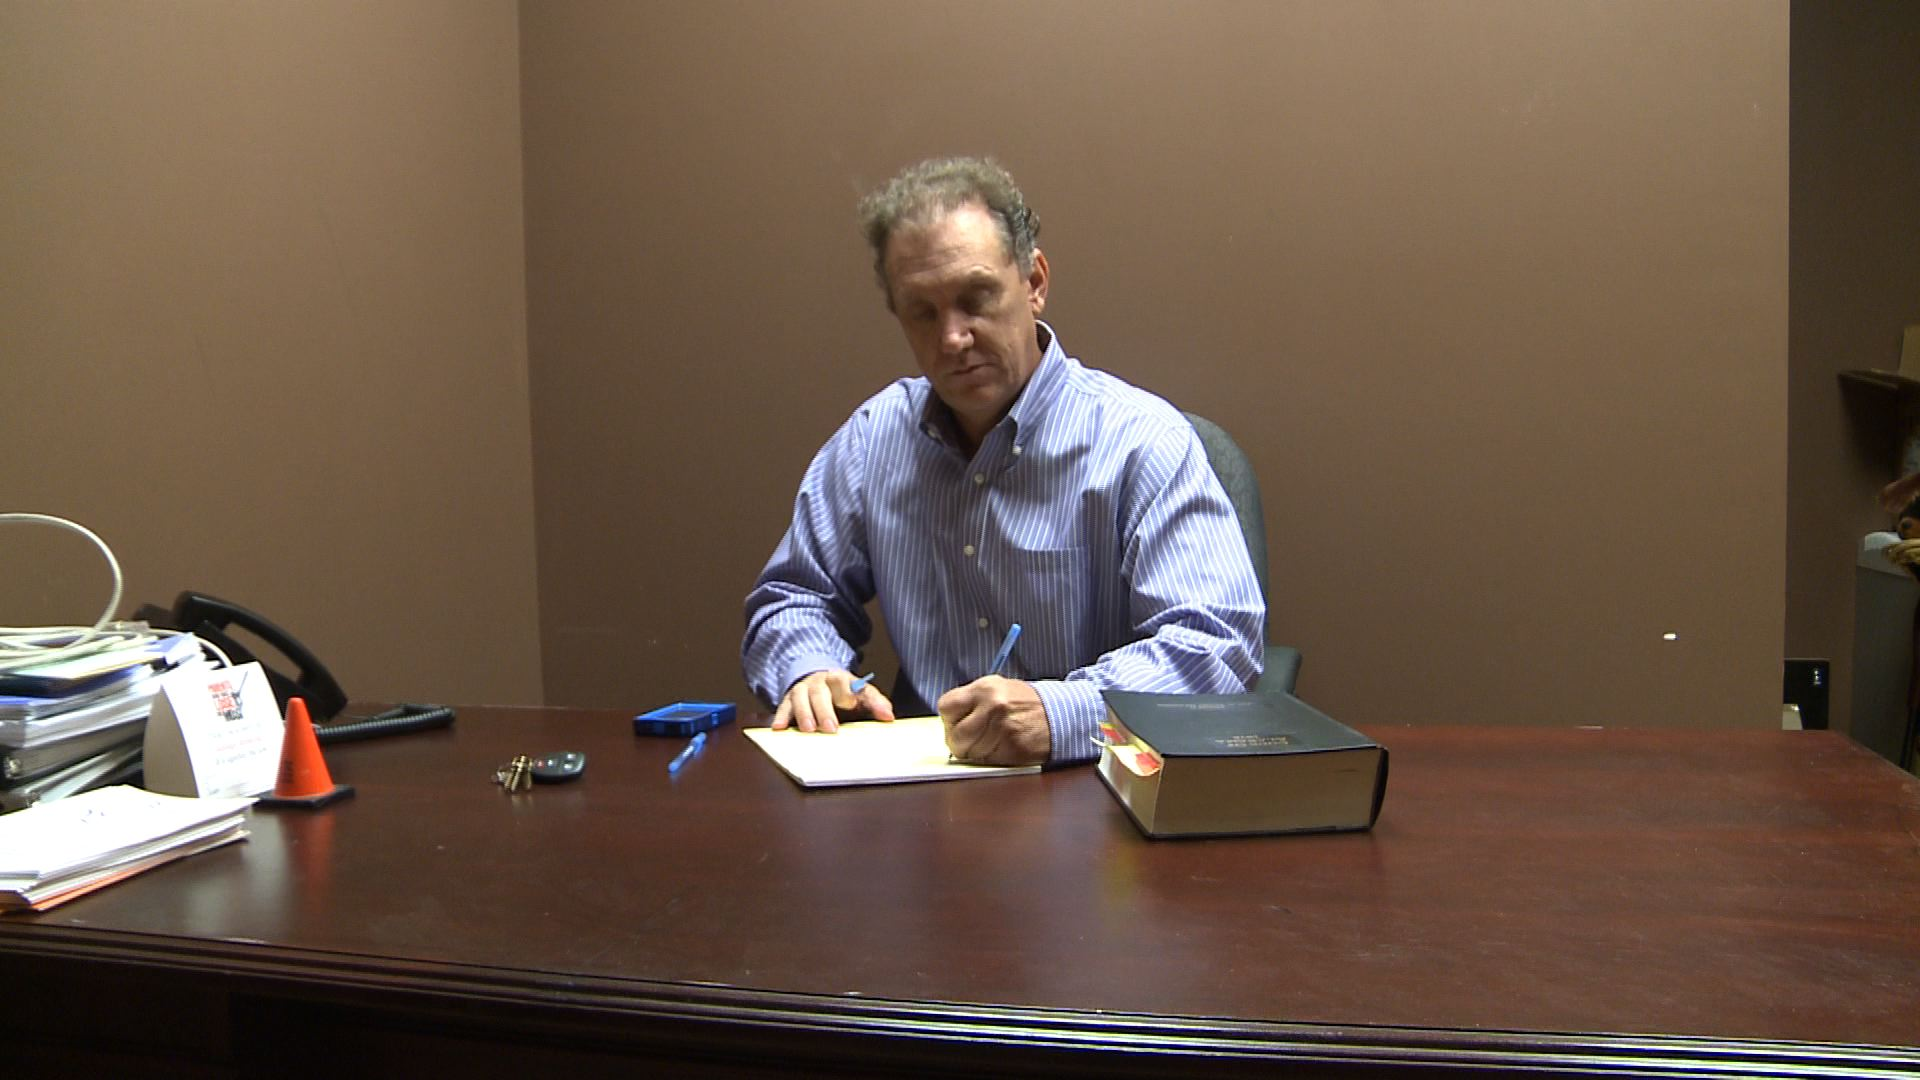 Joey Masters returned to work on Monday, August 12. (Photo: Carson Clark, WHNT News 19)